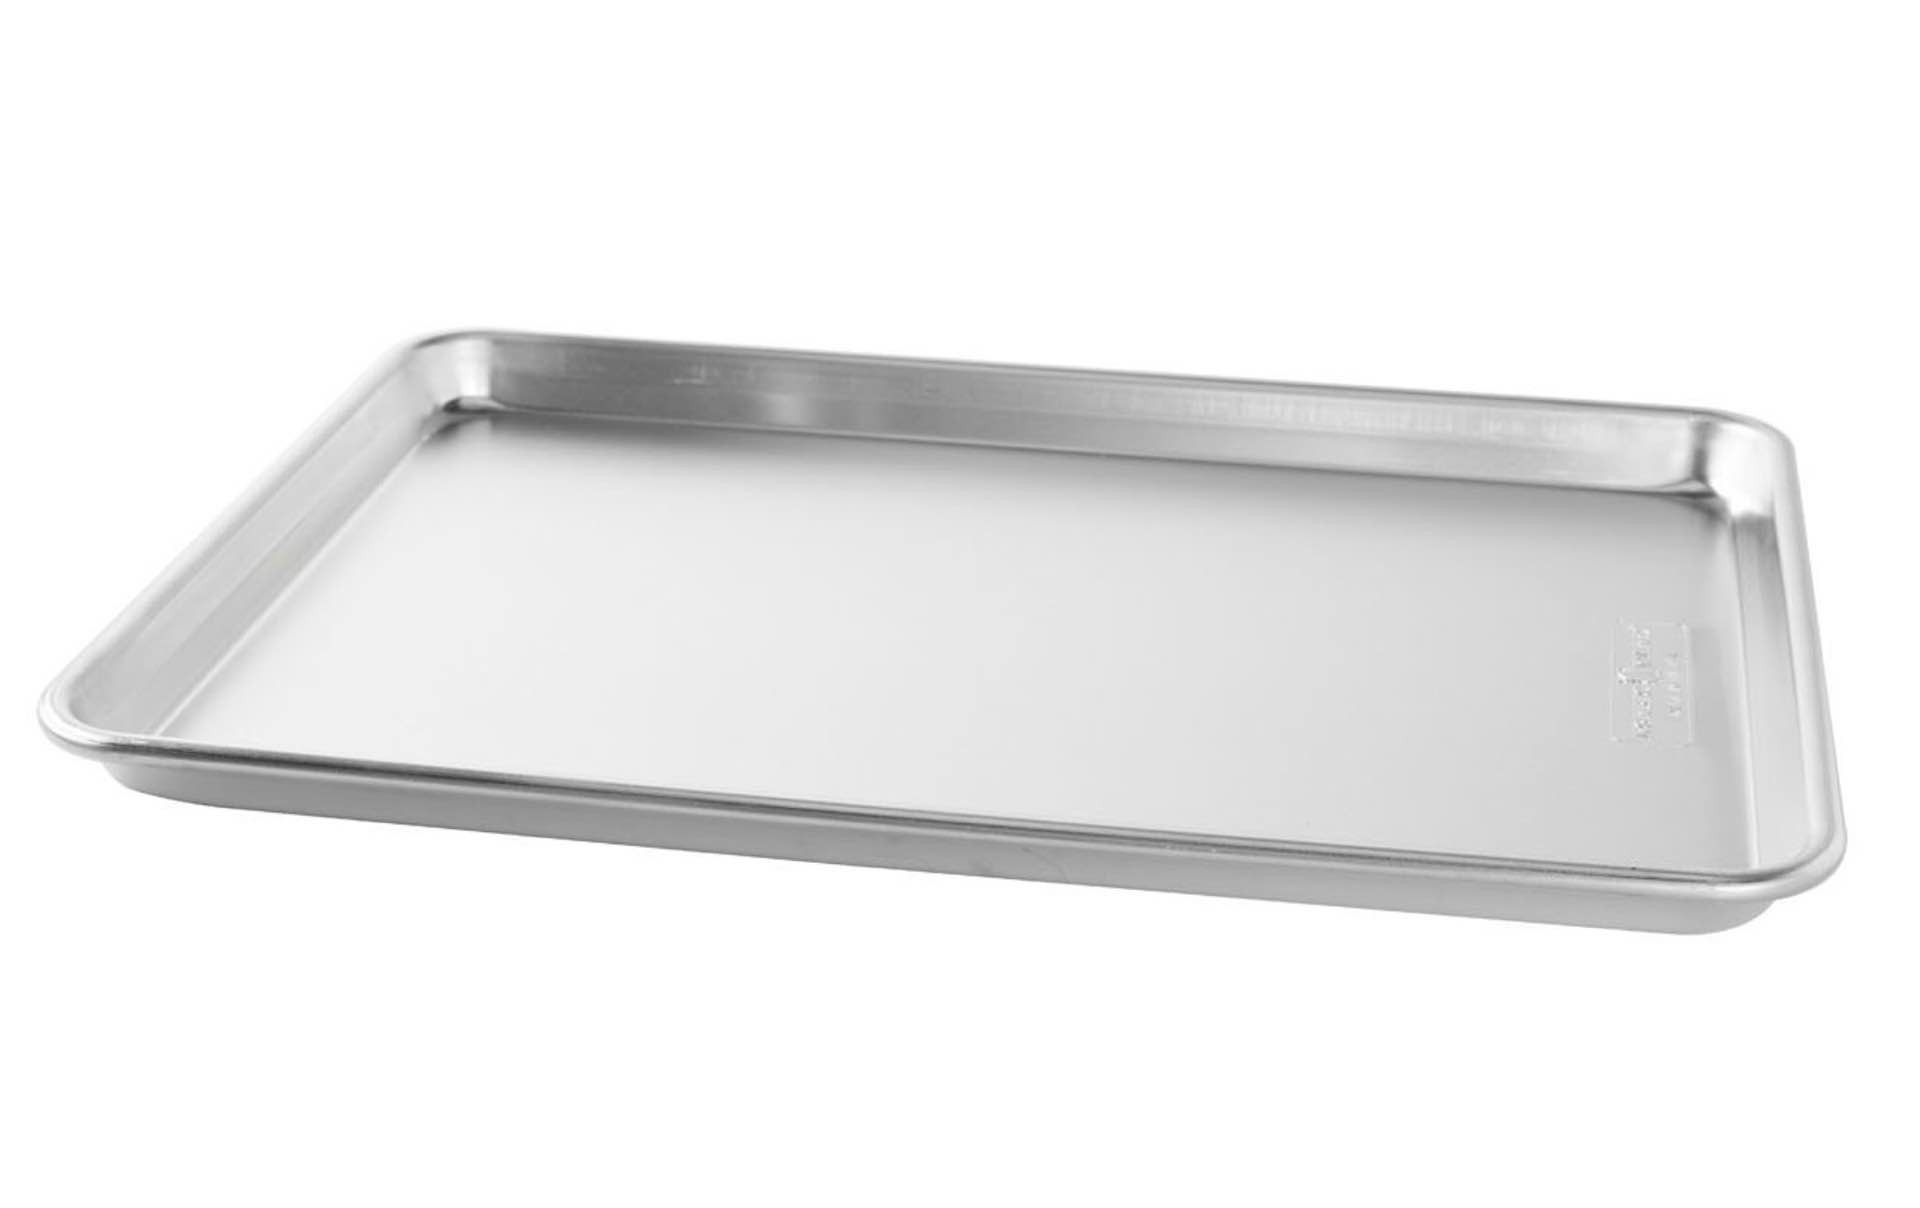 Nordic Ware's commercial aluminum baking sheet ($11)